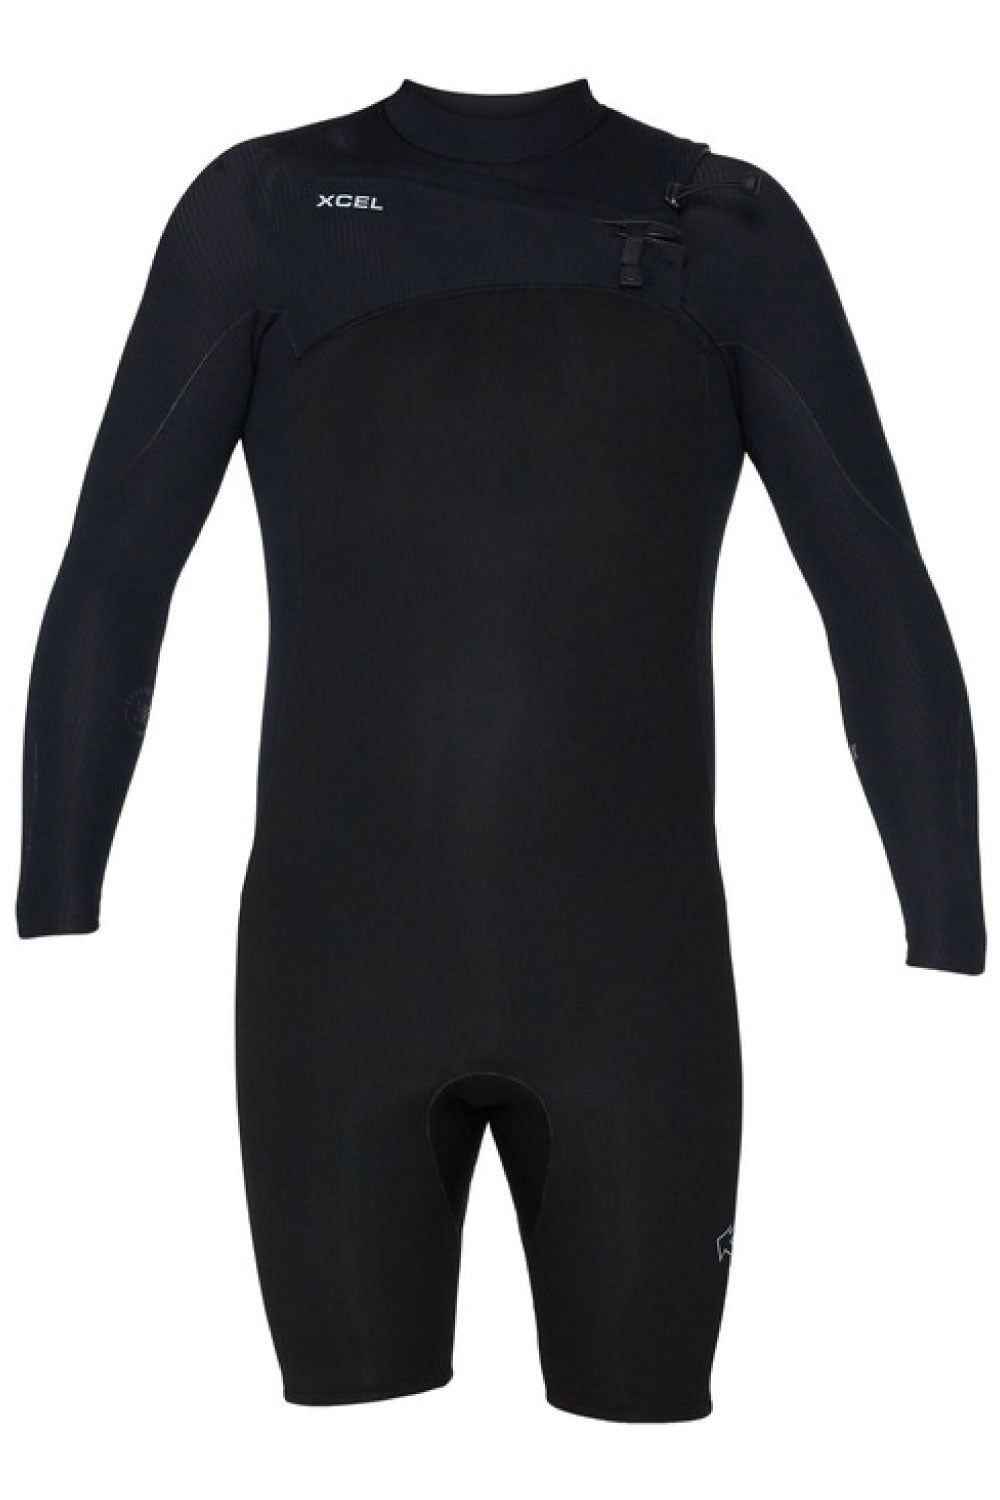 XCEL 2mm COMP X Long Sleeve Spring Suit - Black